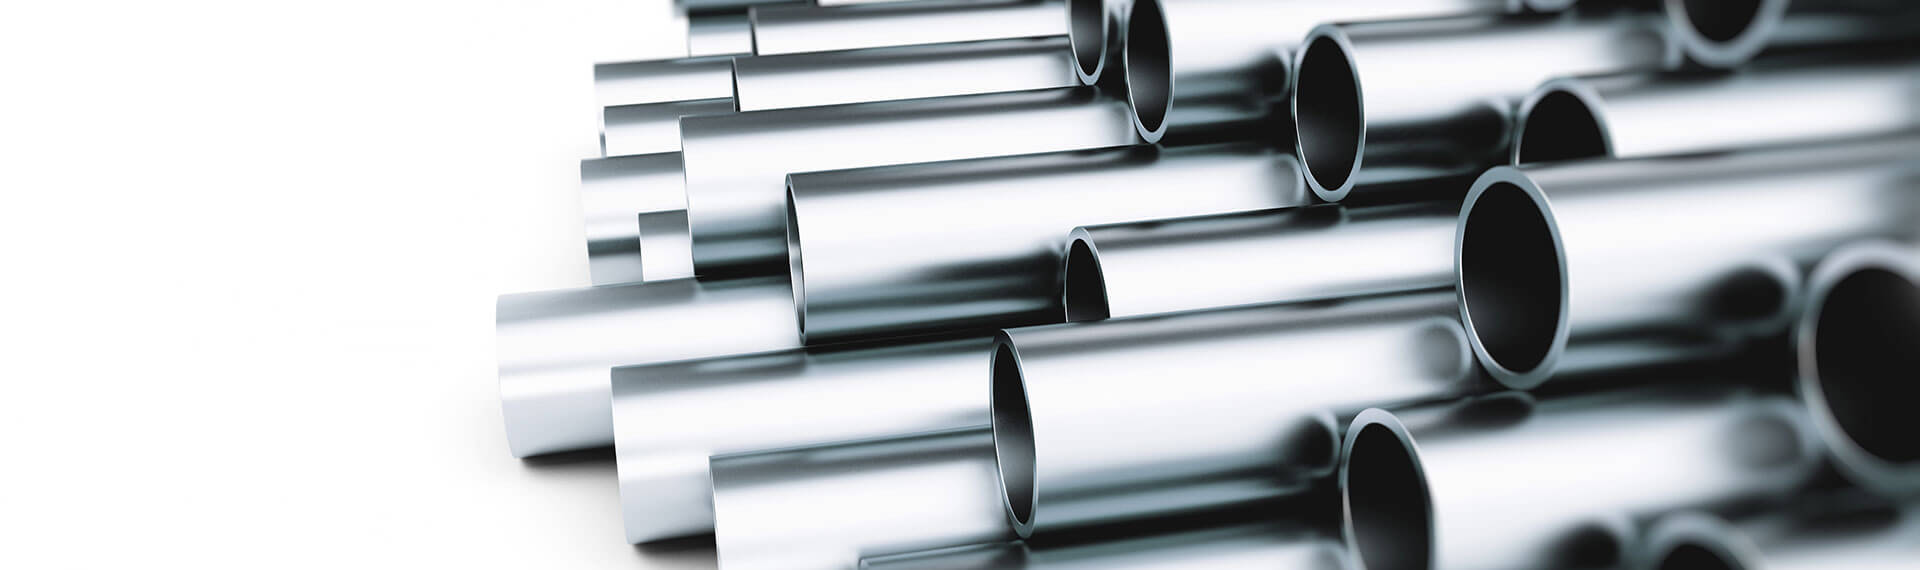 Extruded round tubing profiles